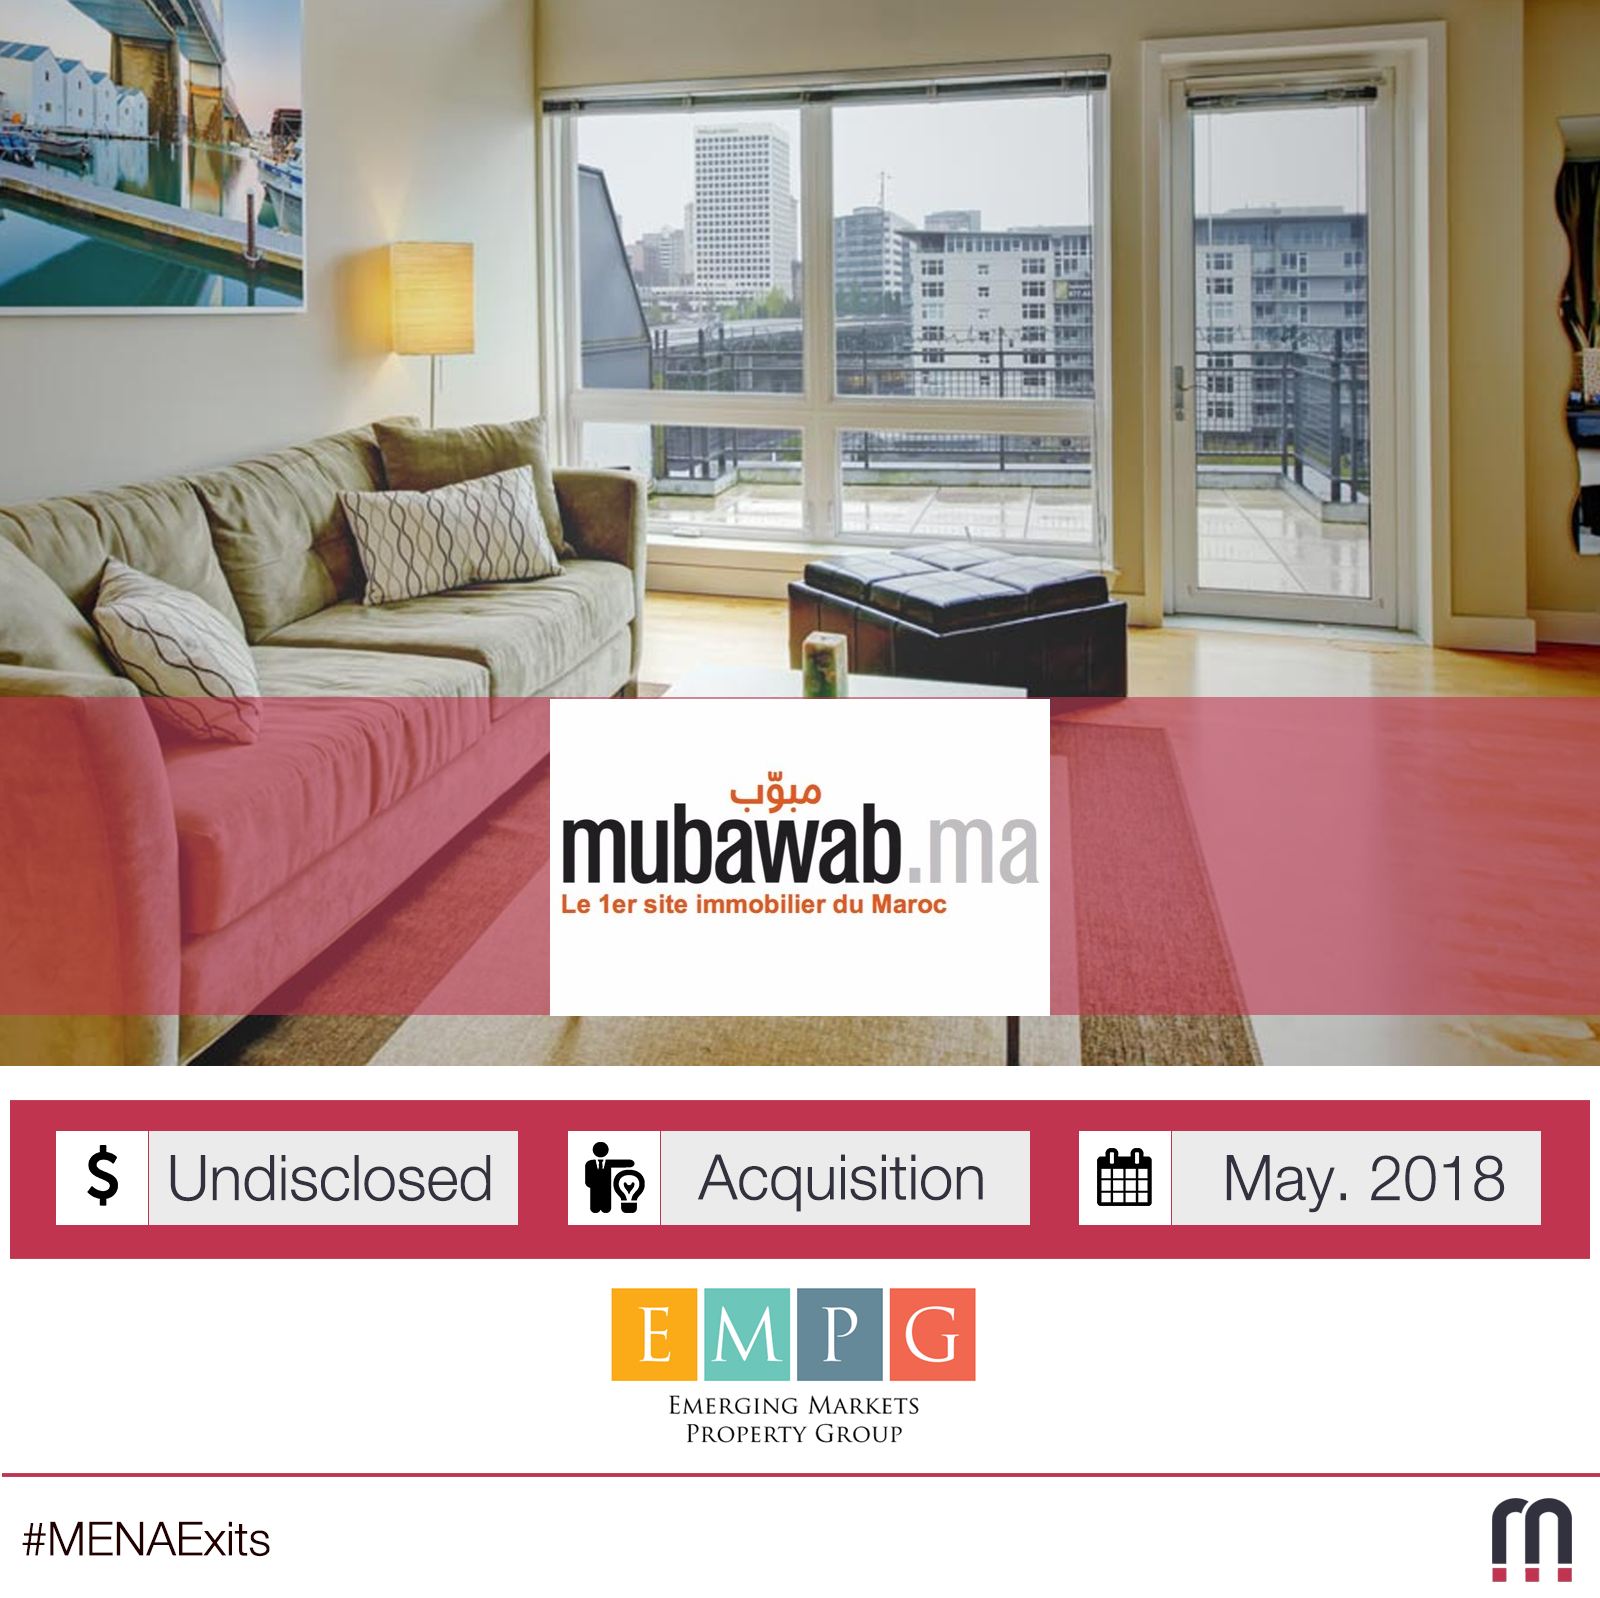 Bayut's Parent Company acquires Morocco-based Real Estate Website Mubawab